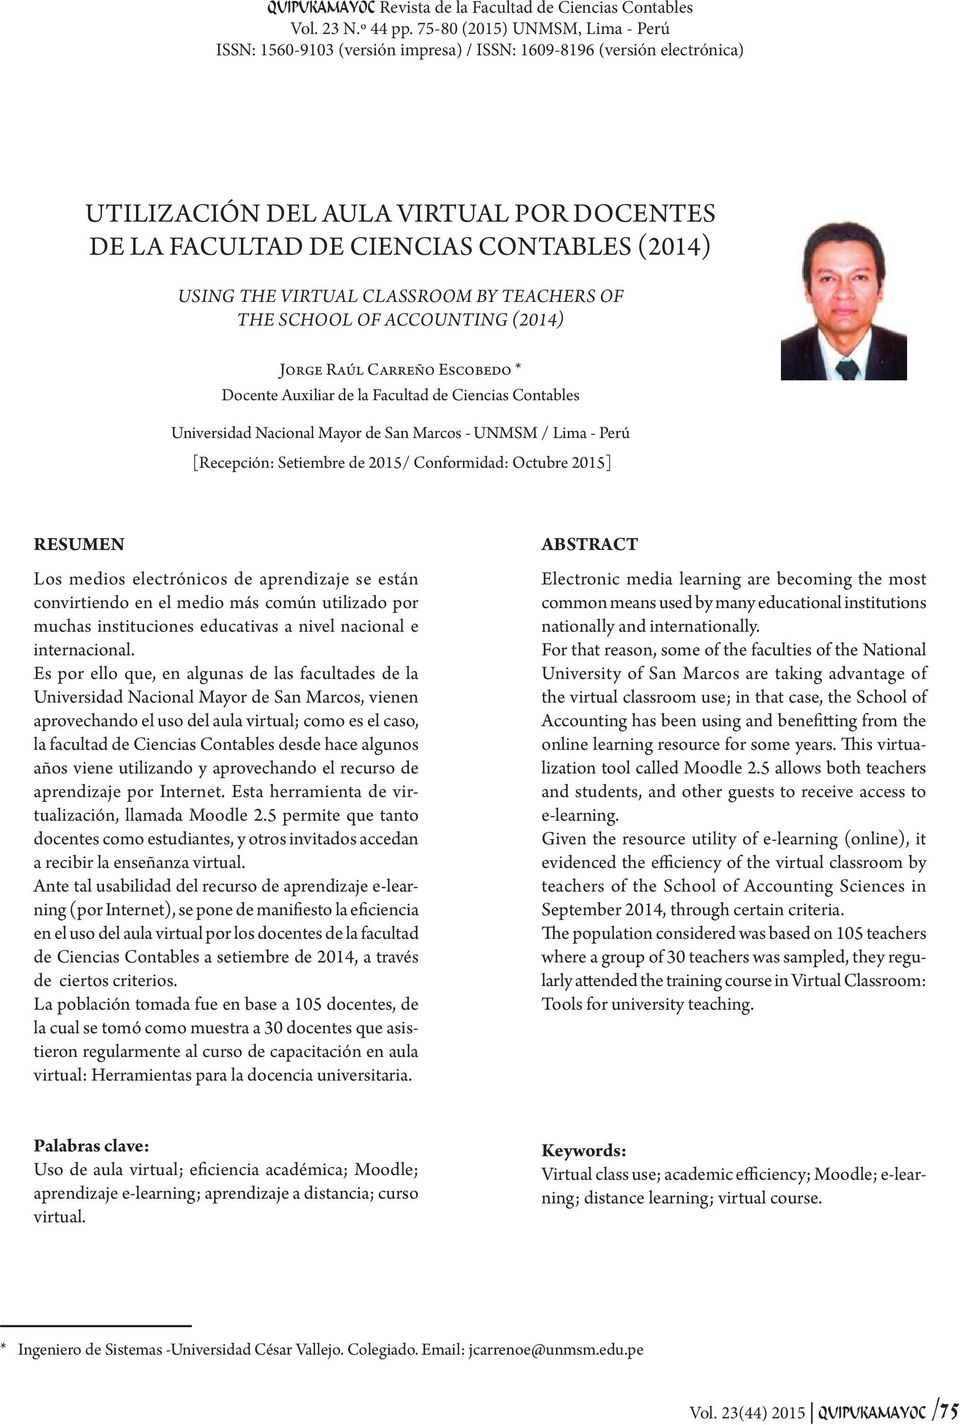 THE VIRTUAL CLASSROOM BY TEACHERS OF THE SCHOOL OF ACCOUNTING (2014) Jorge Raúl Carreño Escobedo * Docente Auxiliar de la Facultad de Ciencias Contables Universidad Nacional Mayor de San Marcos -